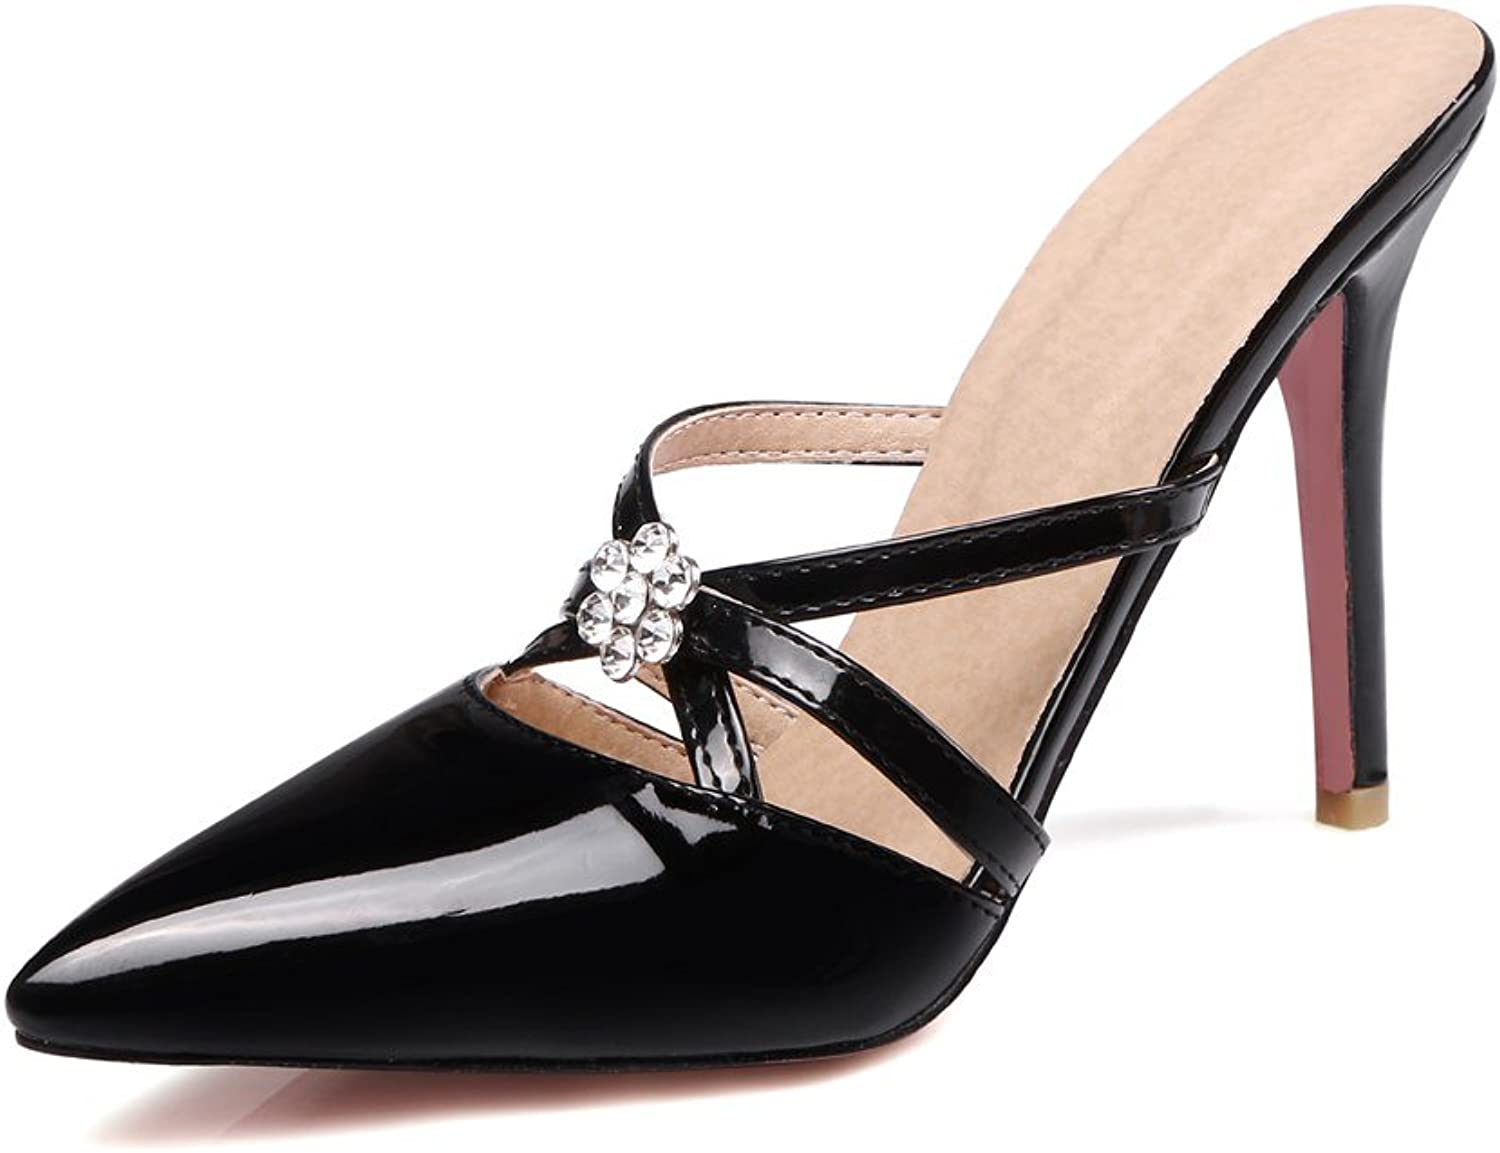 KingRover Womens Sexy Slingback Stiletto High Heel Party Pumps shoes